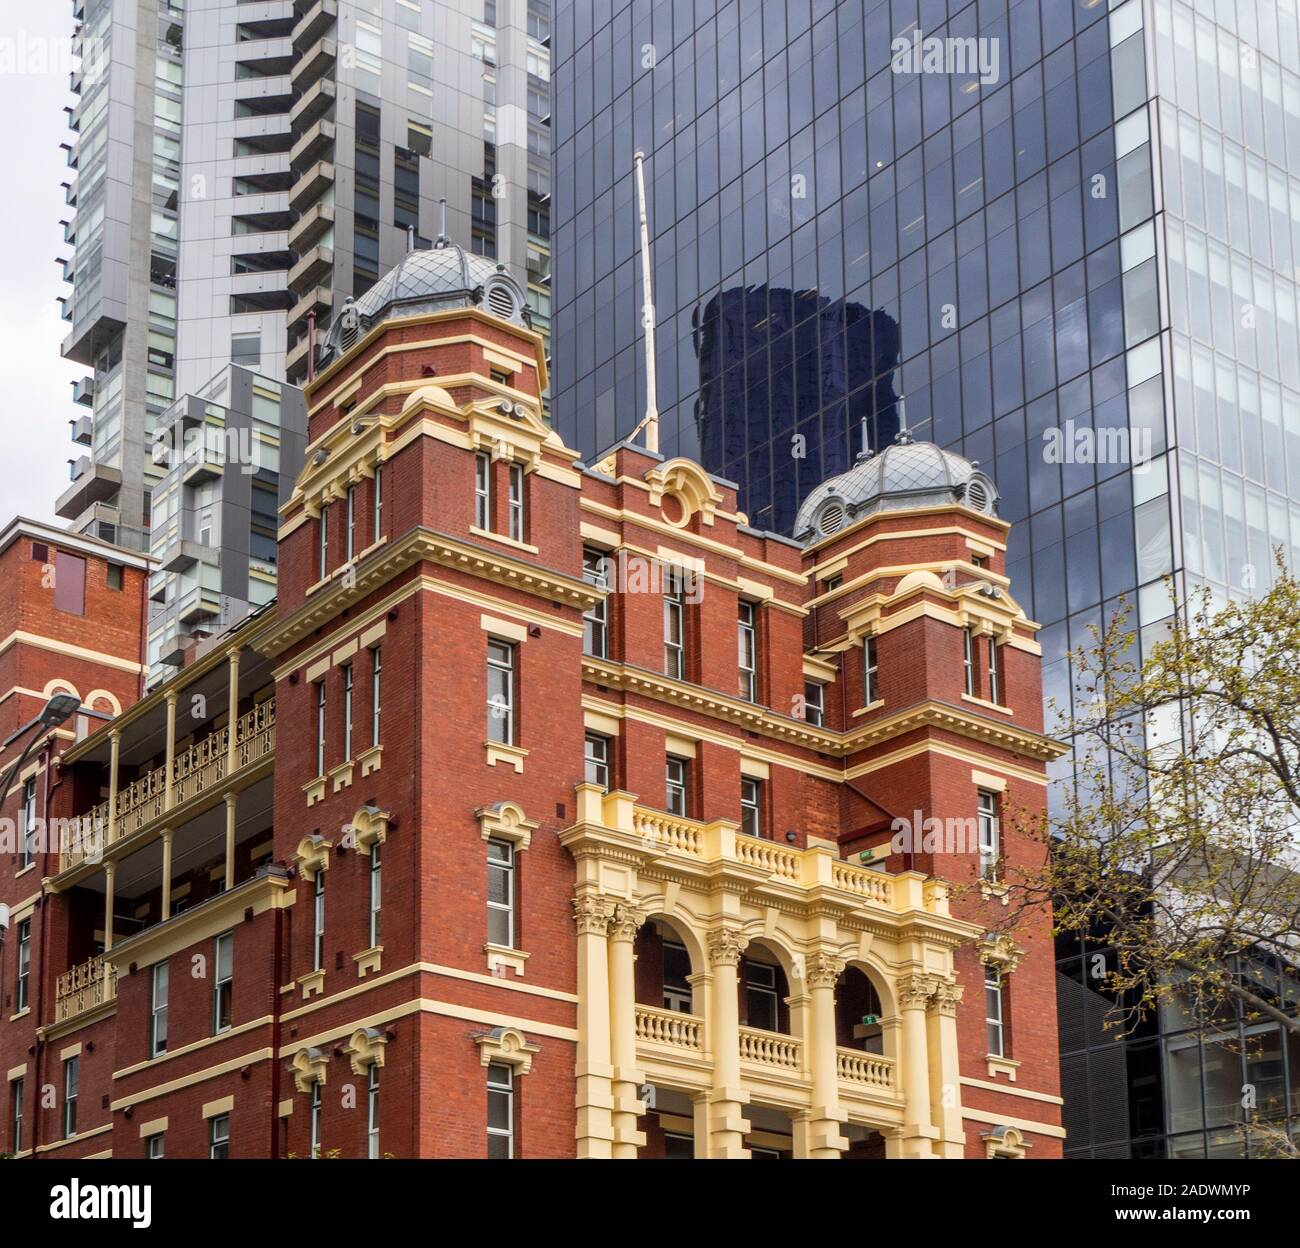 part-of-former-queen-victoria-memorial-hospital-in-edwardian-architecture-now-queen-victoria-womens-centre-located-lonsdale-st-melbourne-victoria-aust-2ADWMYP.jpg